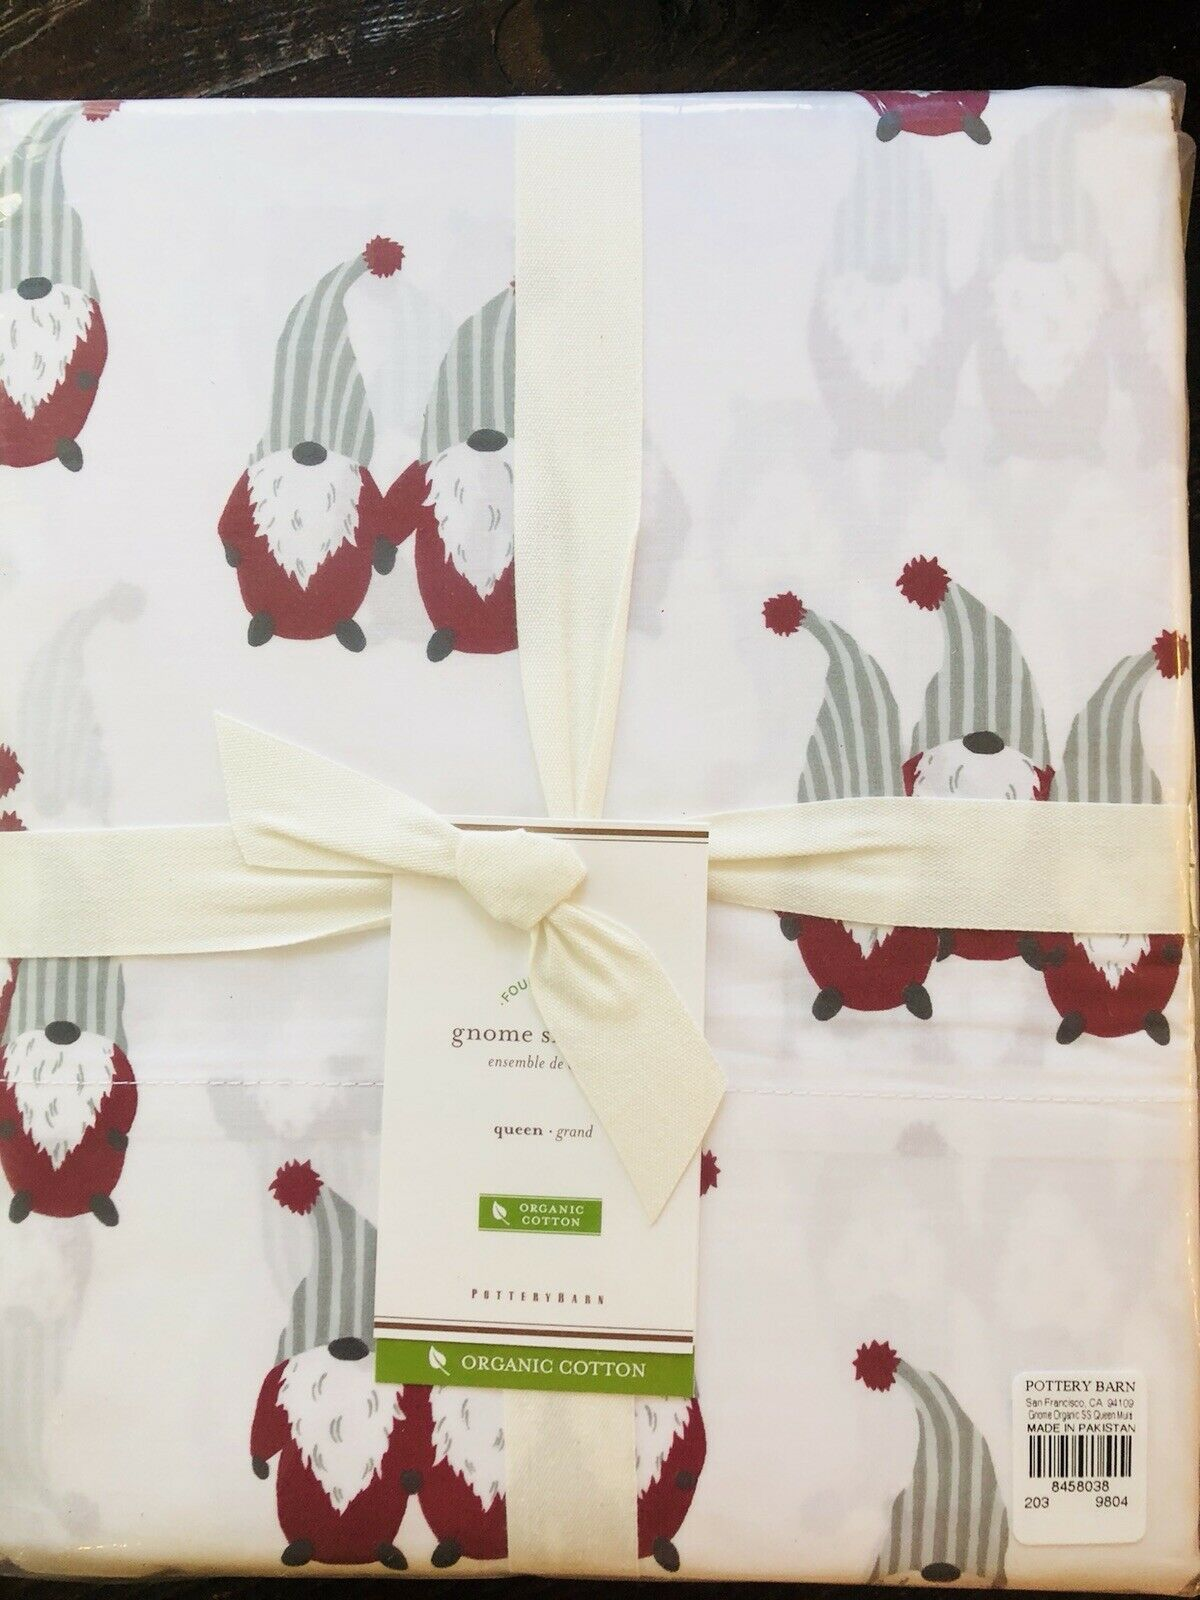 Pottery Barn Gnome Organic Queen Größe Sheet Set Holiday Christmas Bedding New